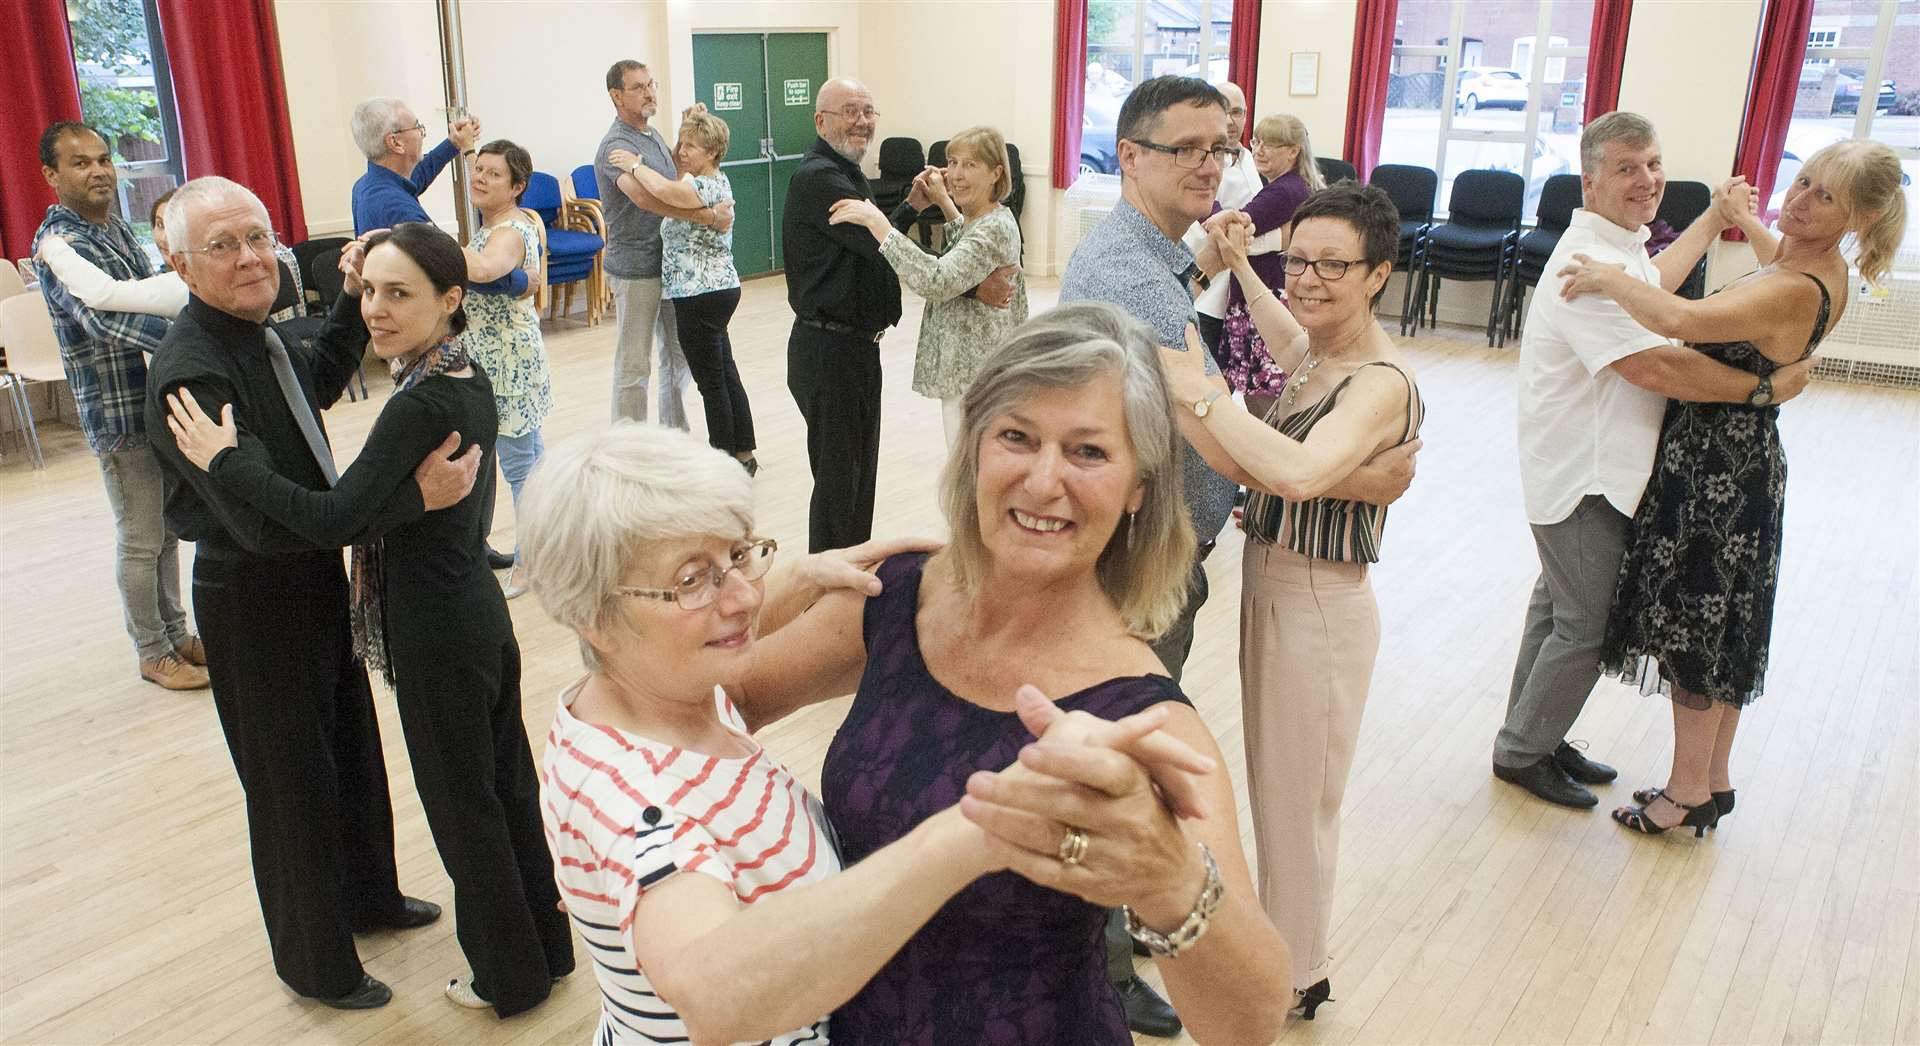 BBC's Strictly Come Dancing is inspirational, says C J Dance